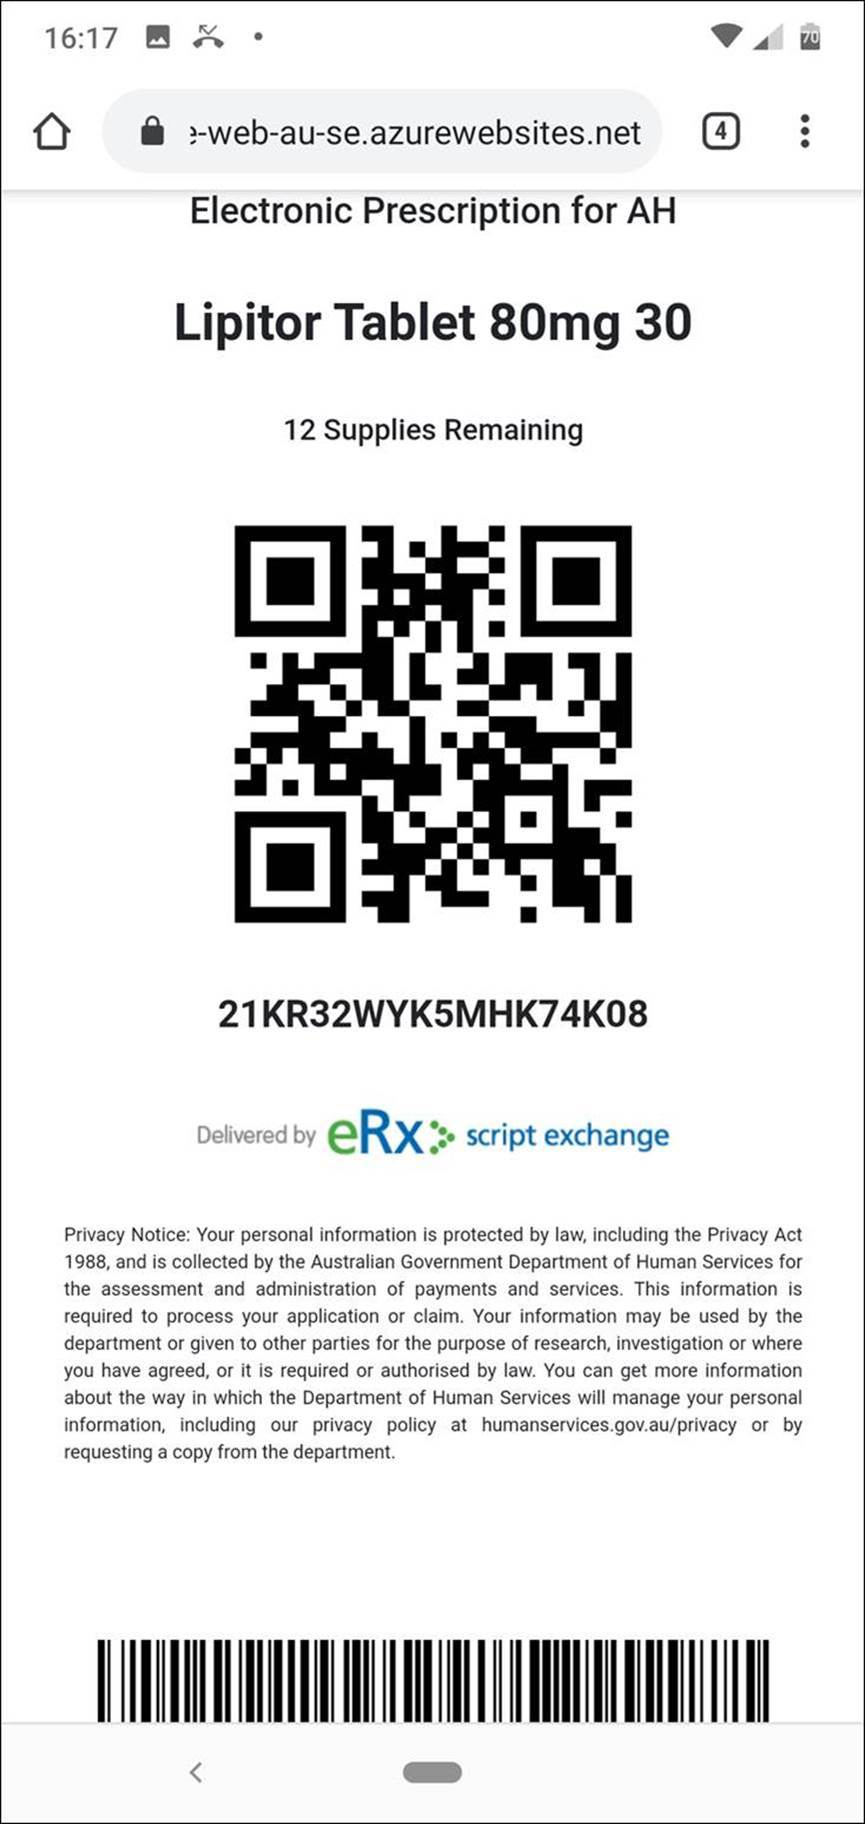 The token can be sent to the patient via an app, SMS or email, and is scanned at the pharmacy.